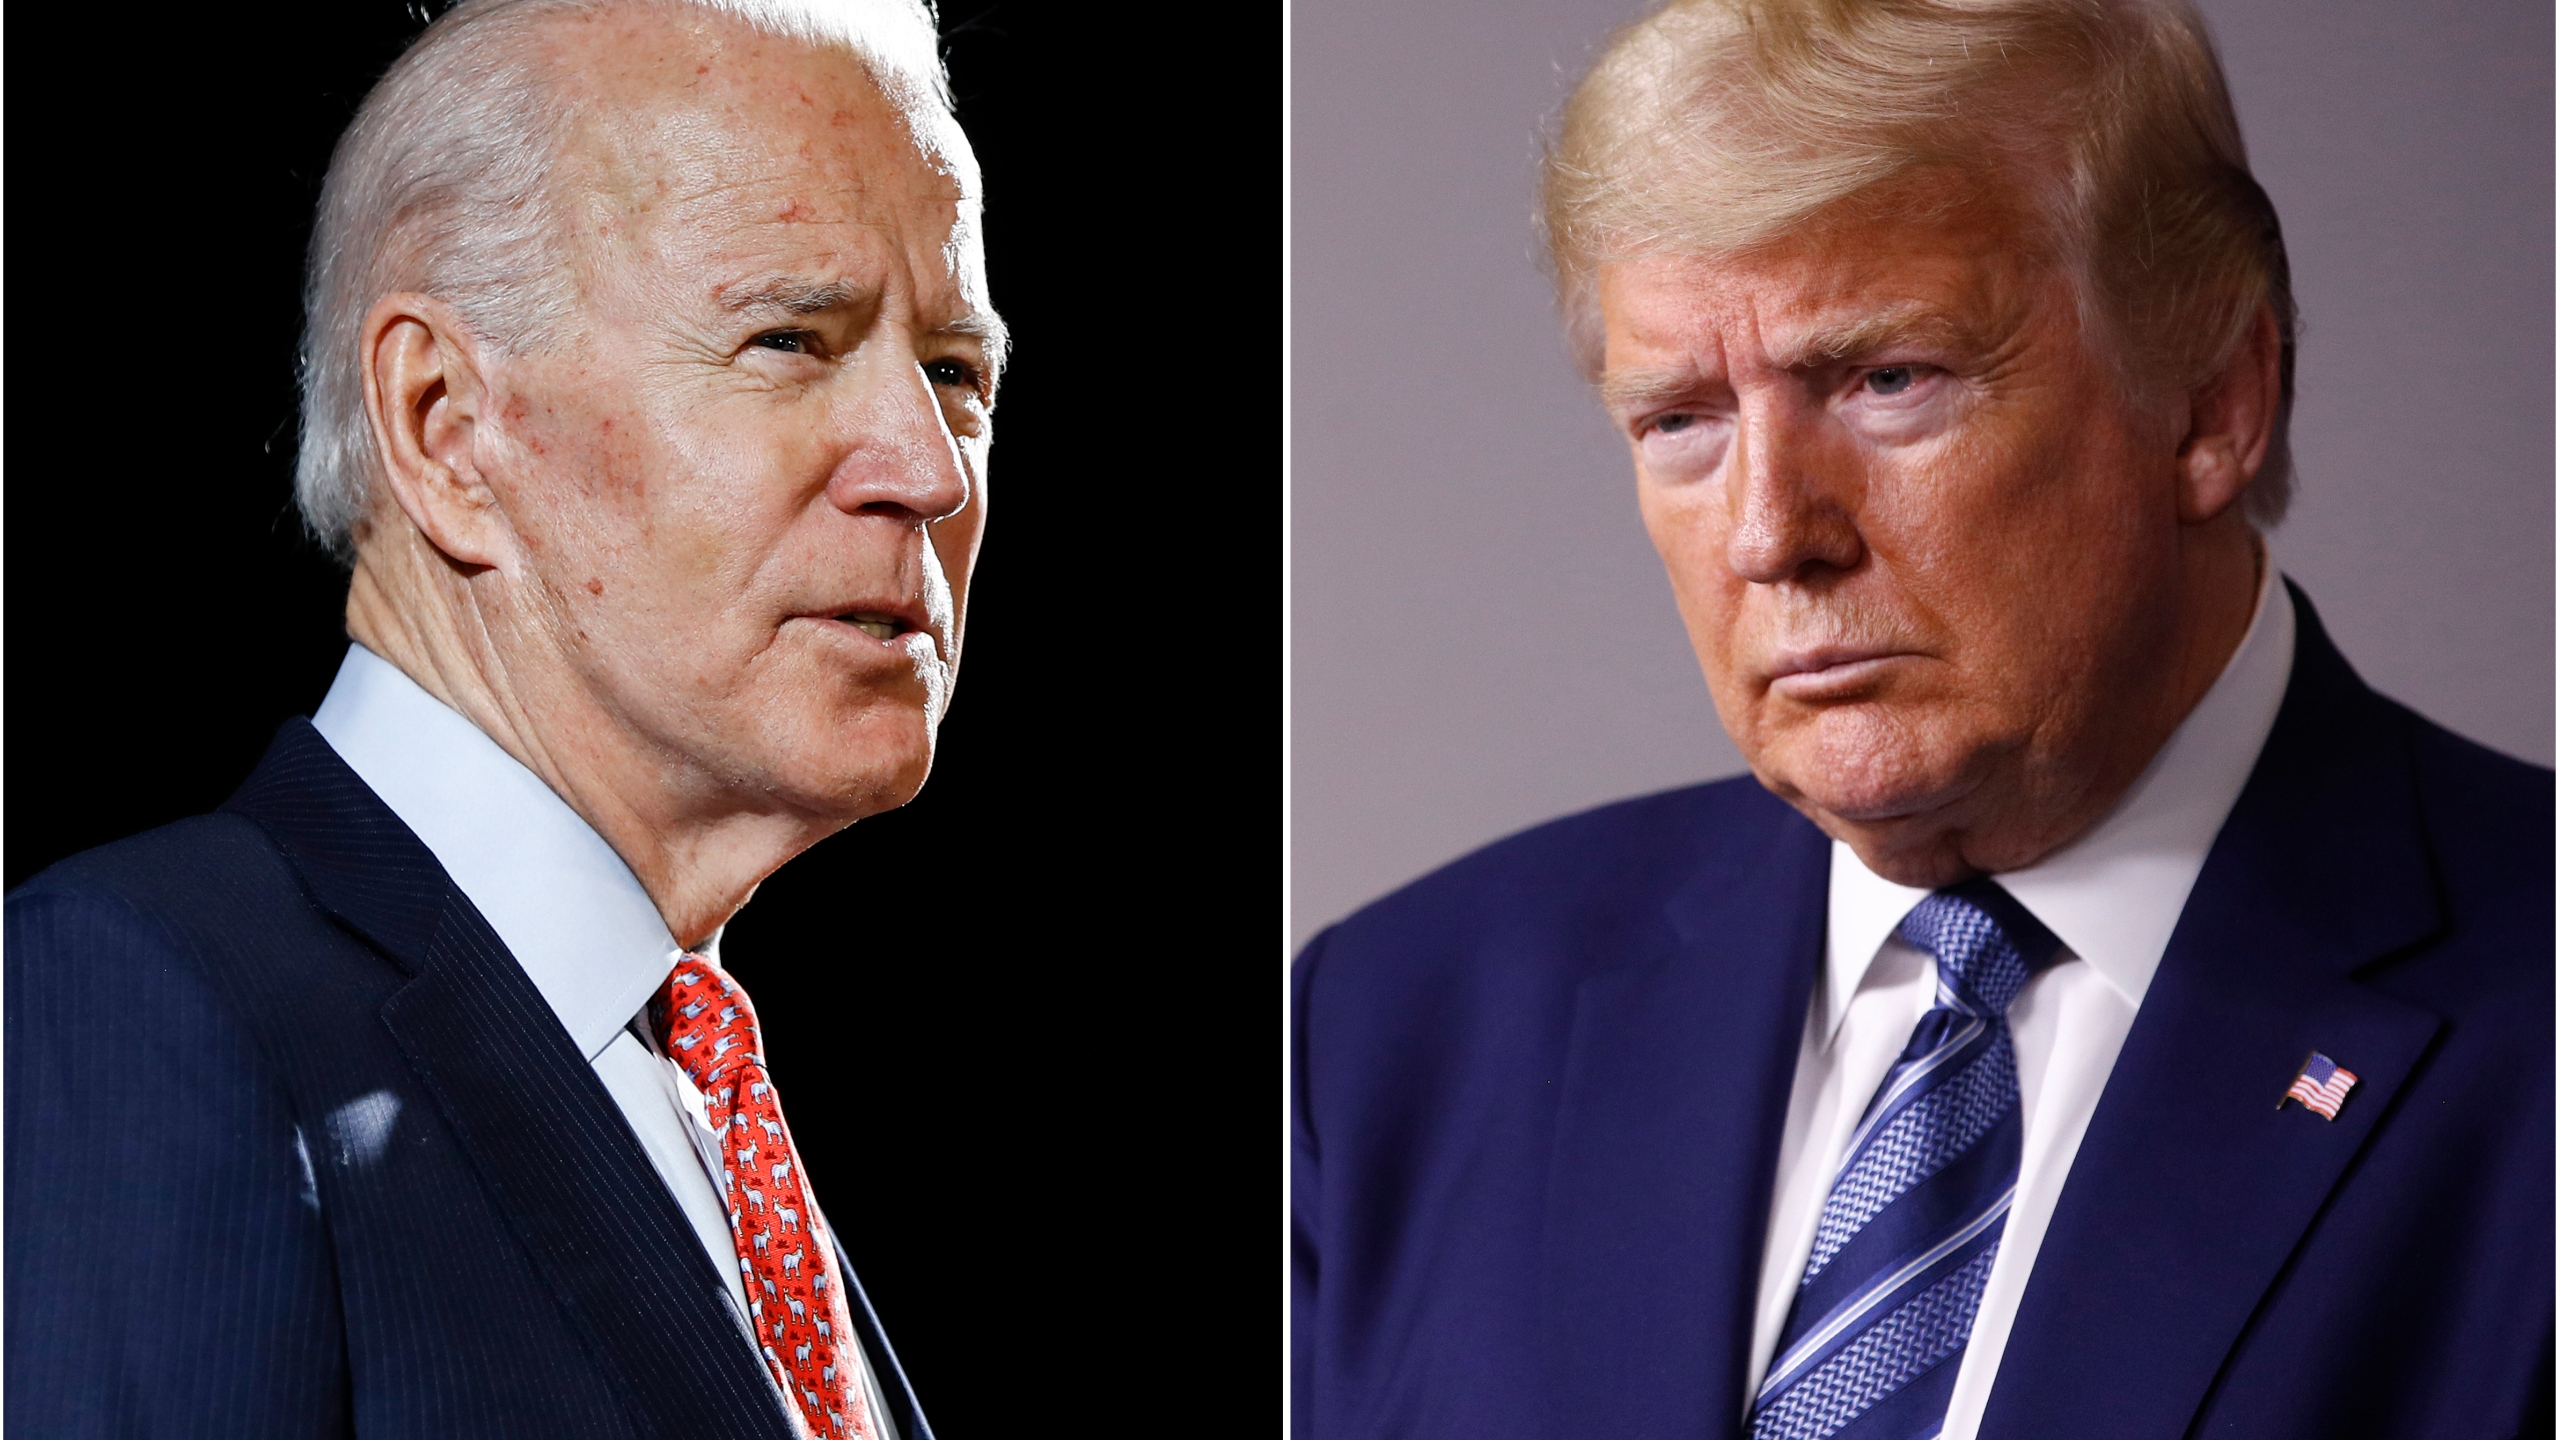 In this combination of file photos, former Vice President Joe Biden speaks in Wilmington, Del., on March 12, 2020, left, and President Donald Trump speaks at the White House in Washington on April 5, 2020. (AP Photo, File)